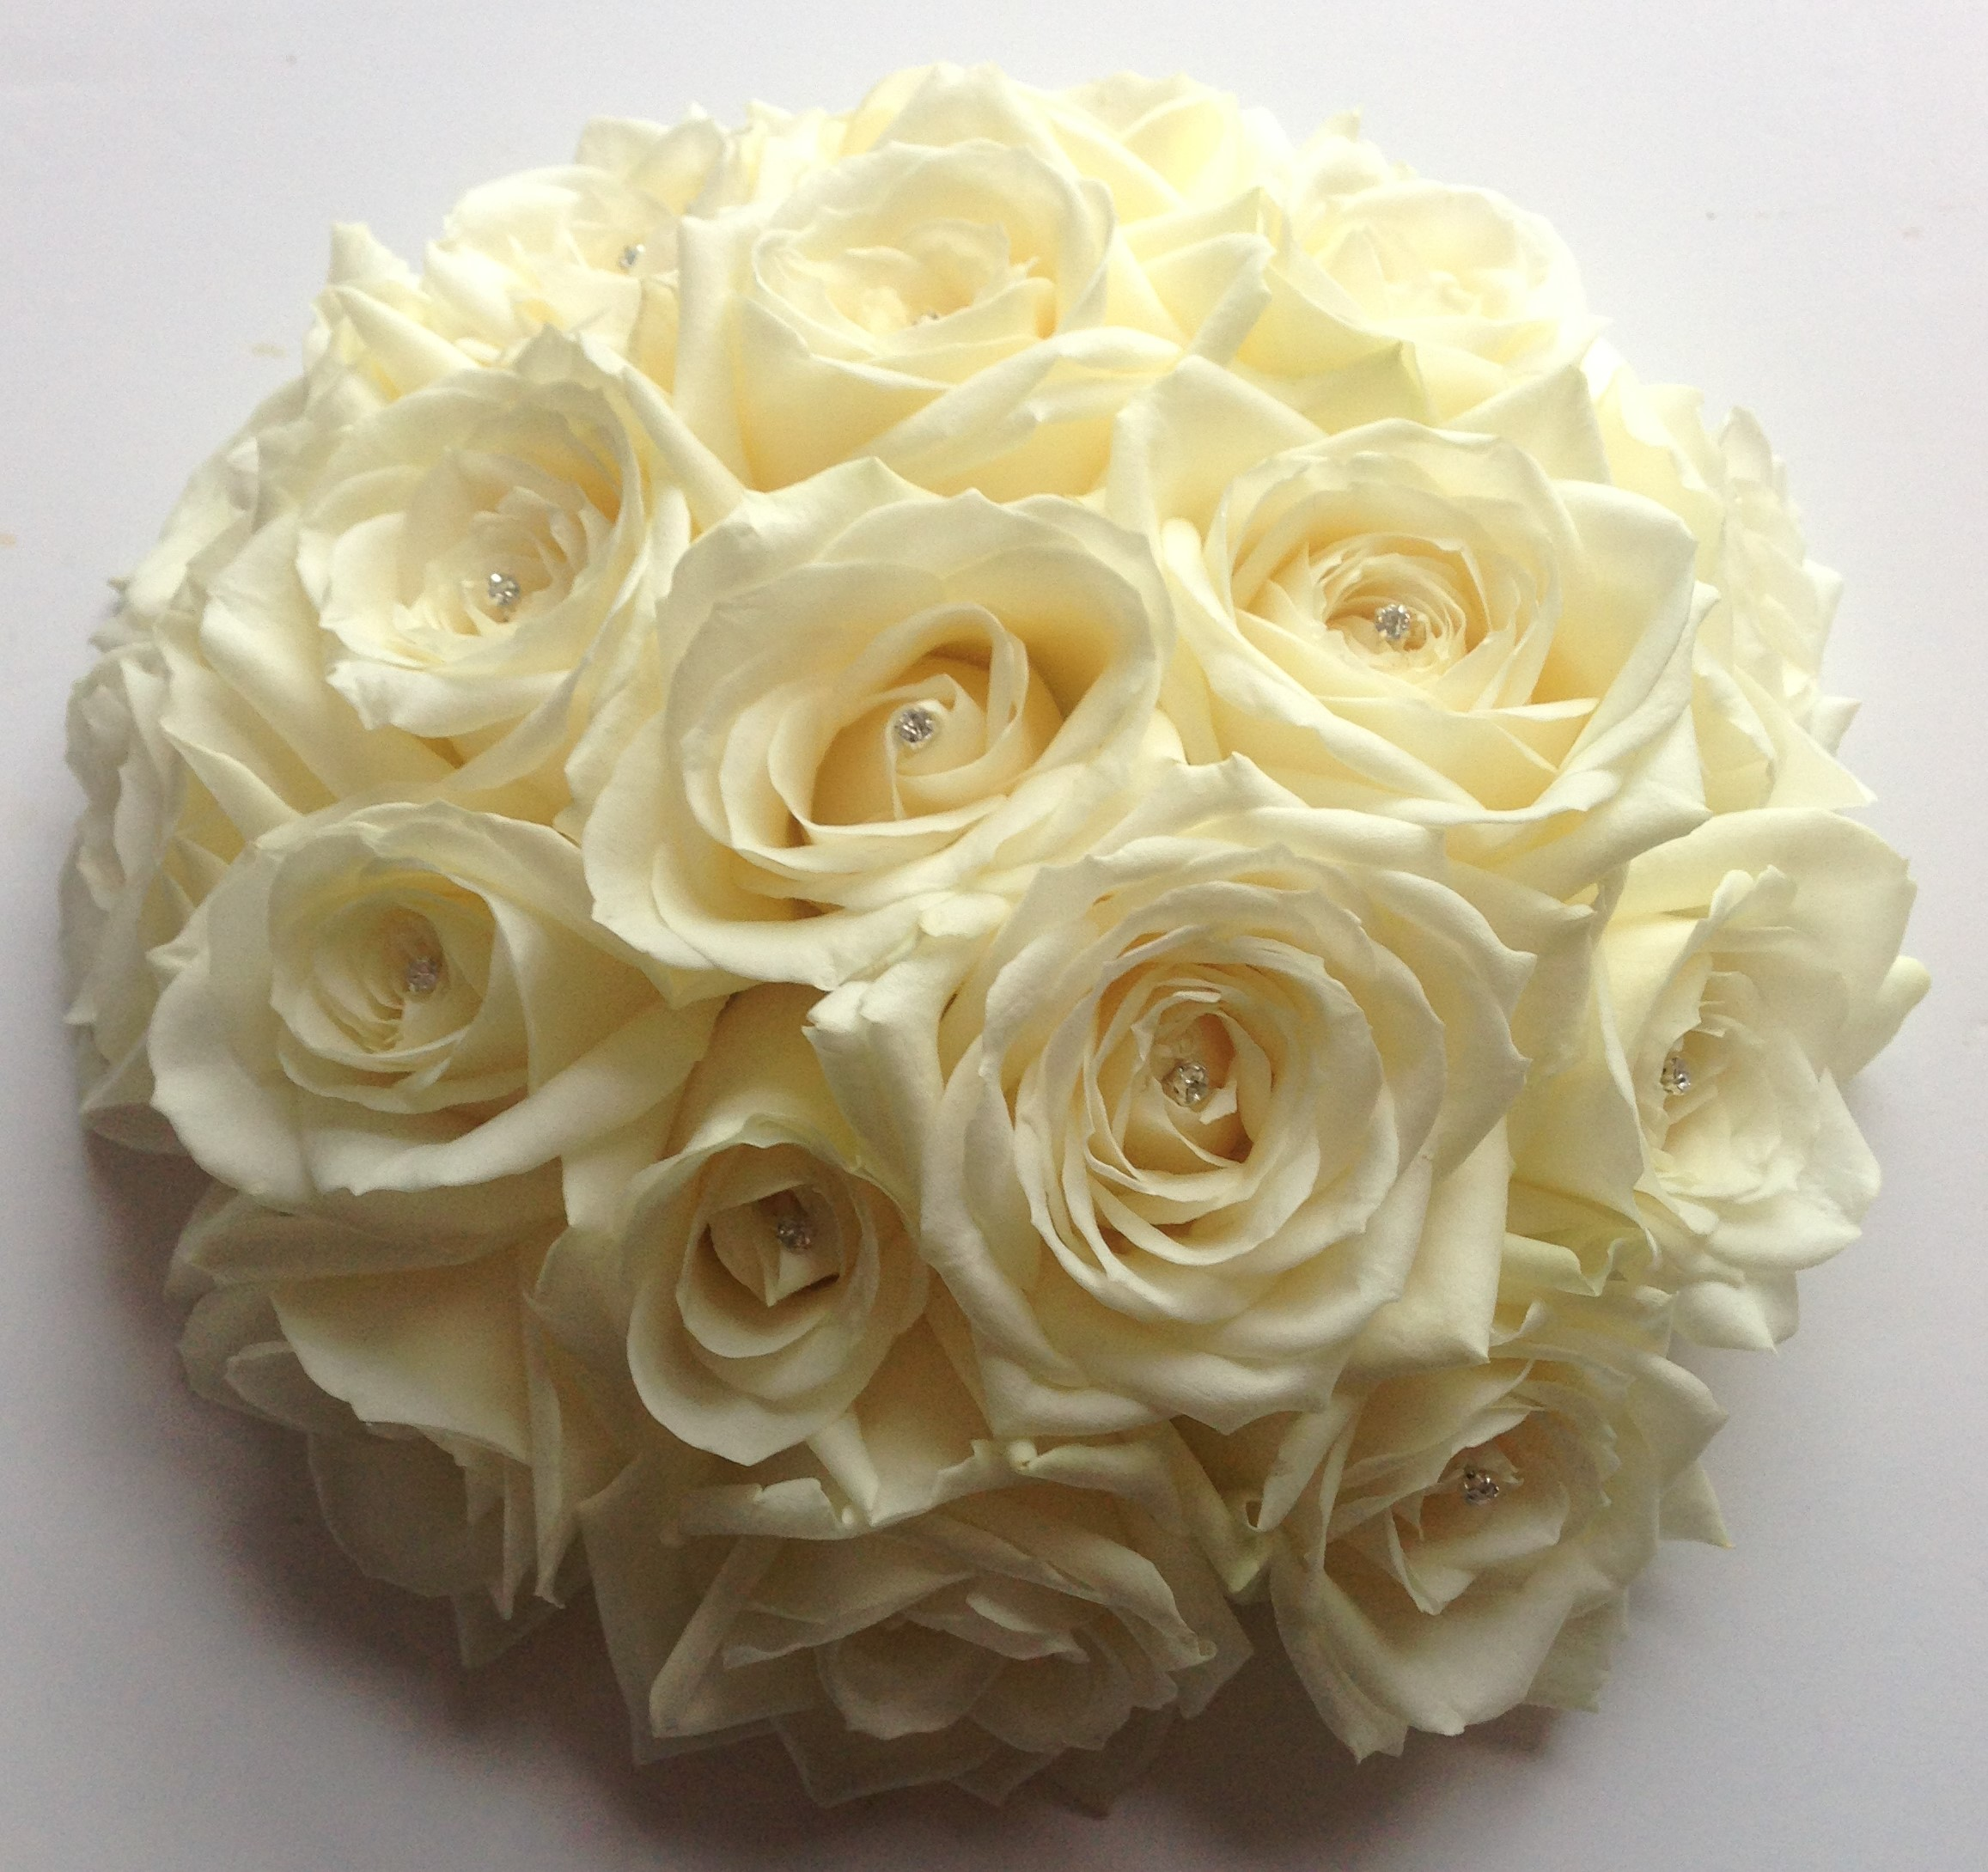 wedding flowers for bride in a hand tried style just roses and diamante